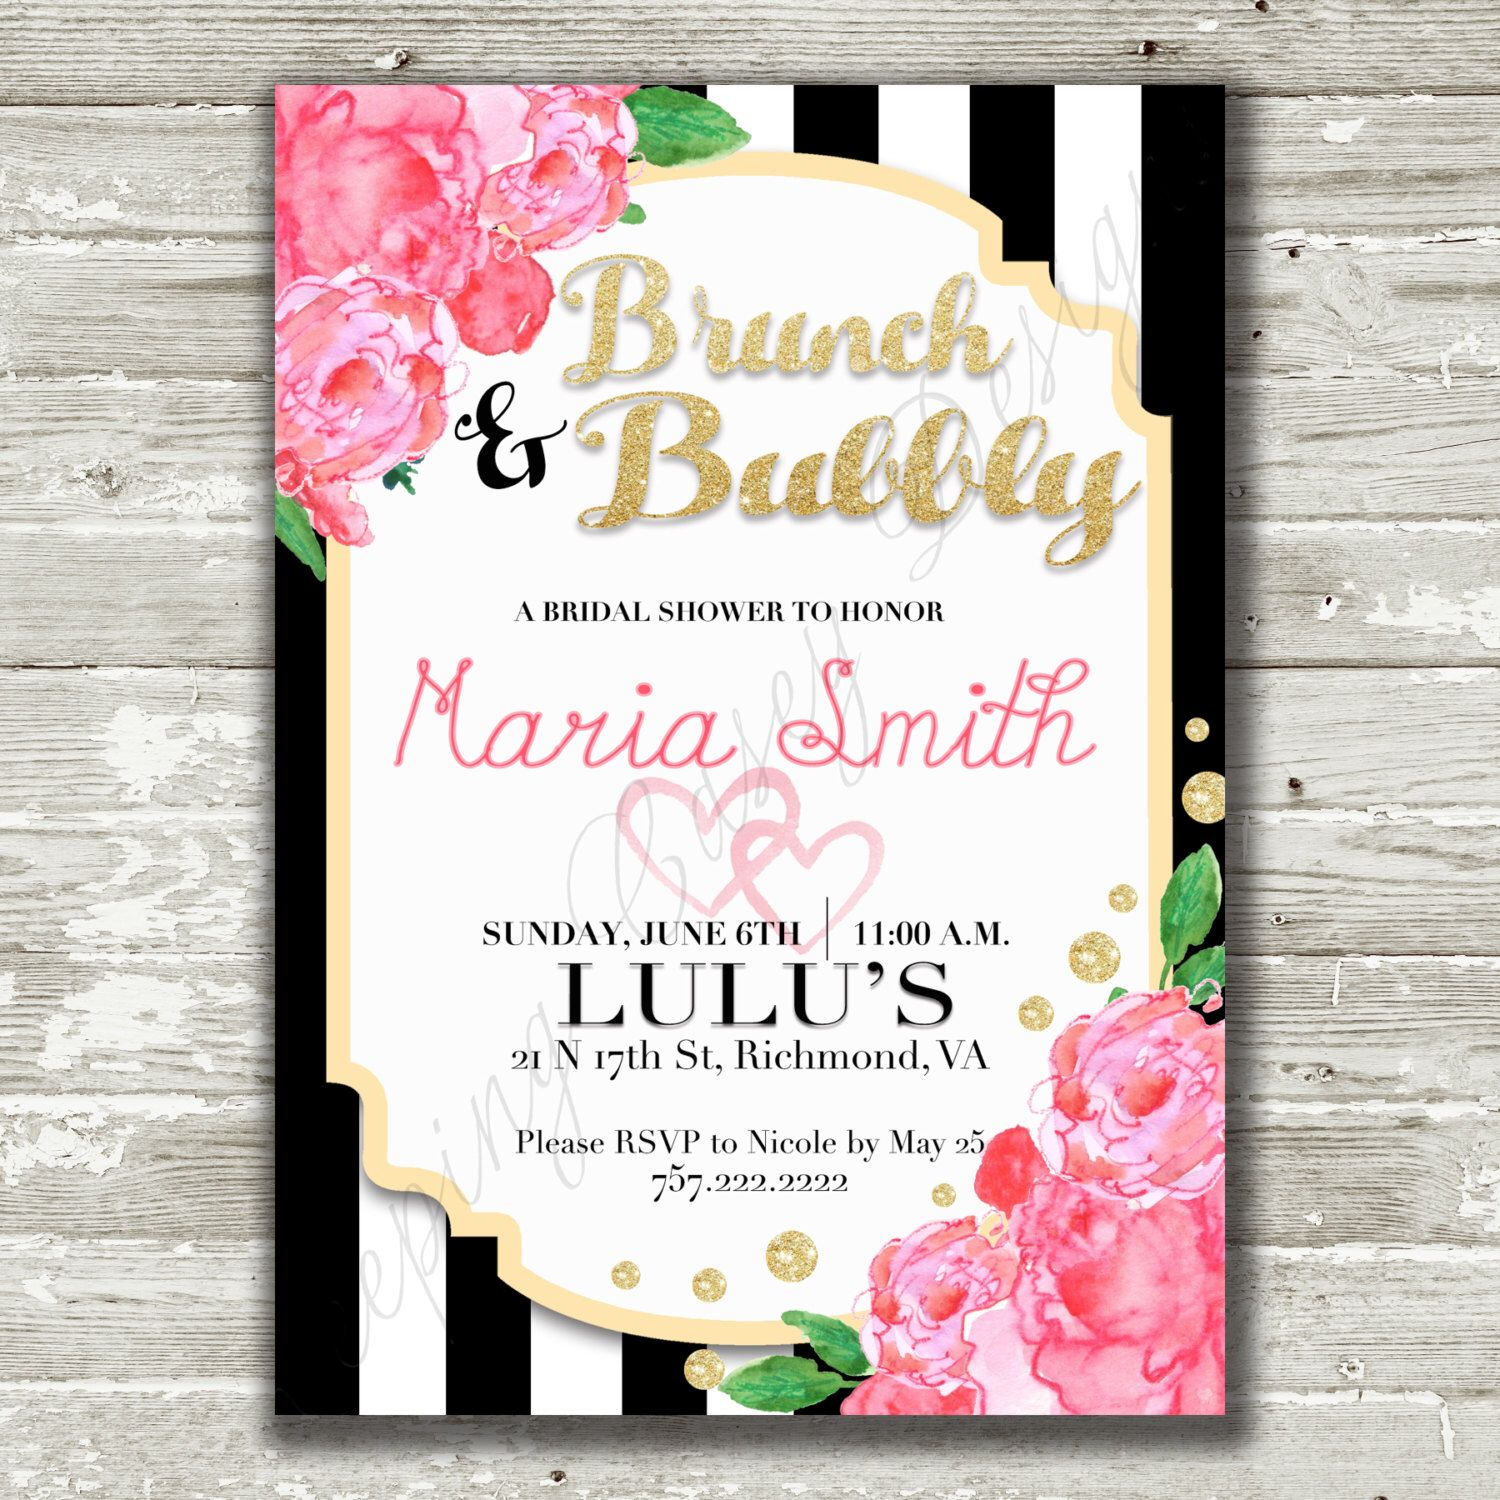 Kate Spade Inspired Bridal Shower Invitation, Kate Spade Brunch And Bubbly  Invitation, Stripes And